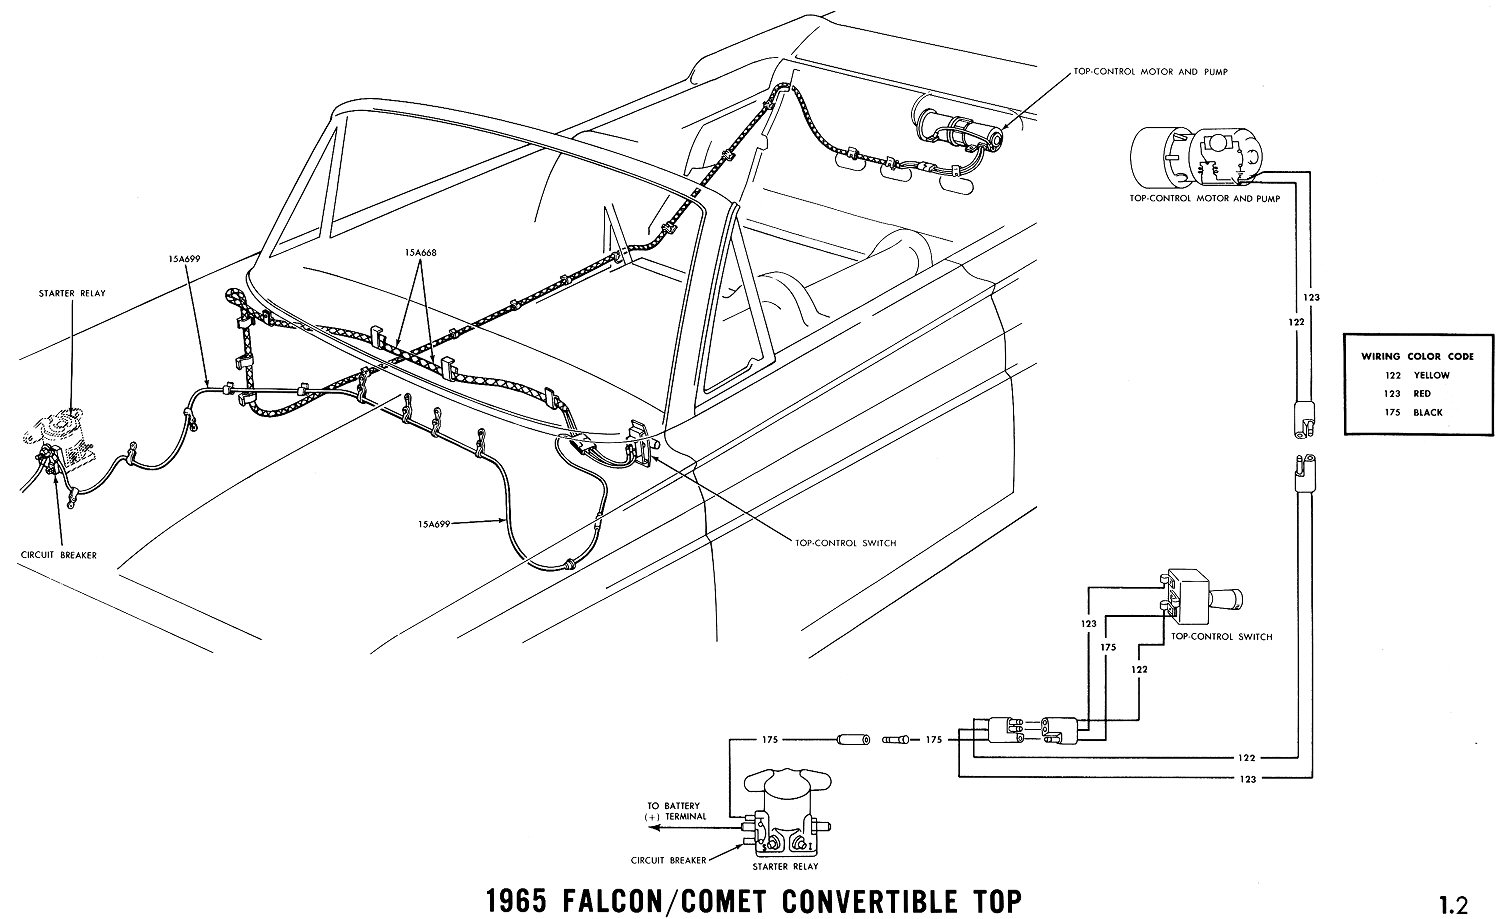 hight resolution of 1965 mustang wiring diagrams average joe restoration 641 2 mustang convertible wiring diagram